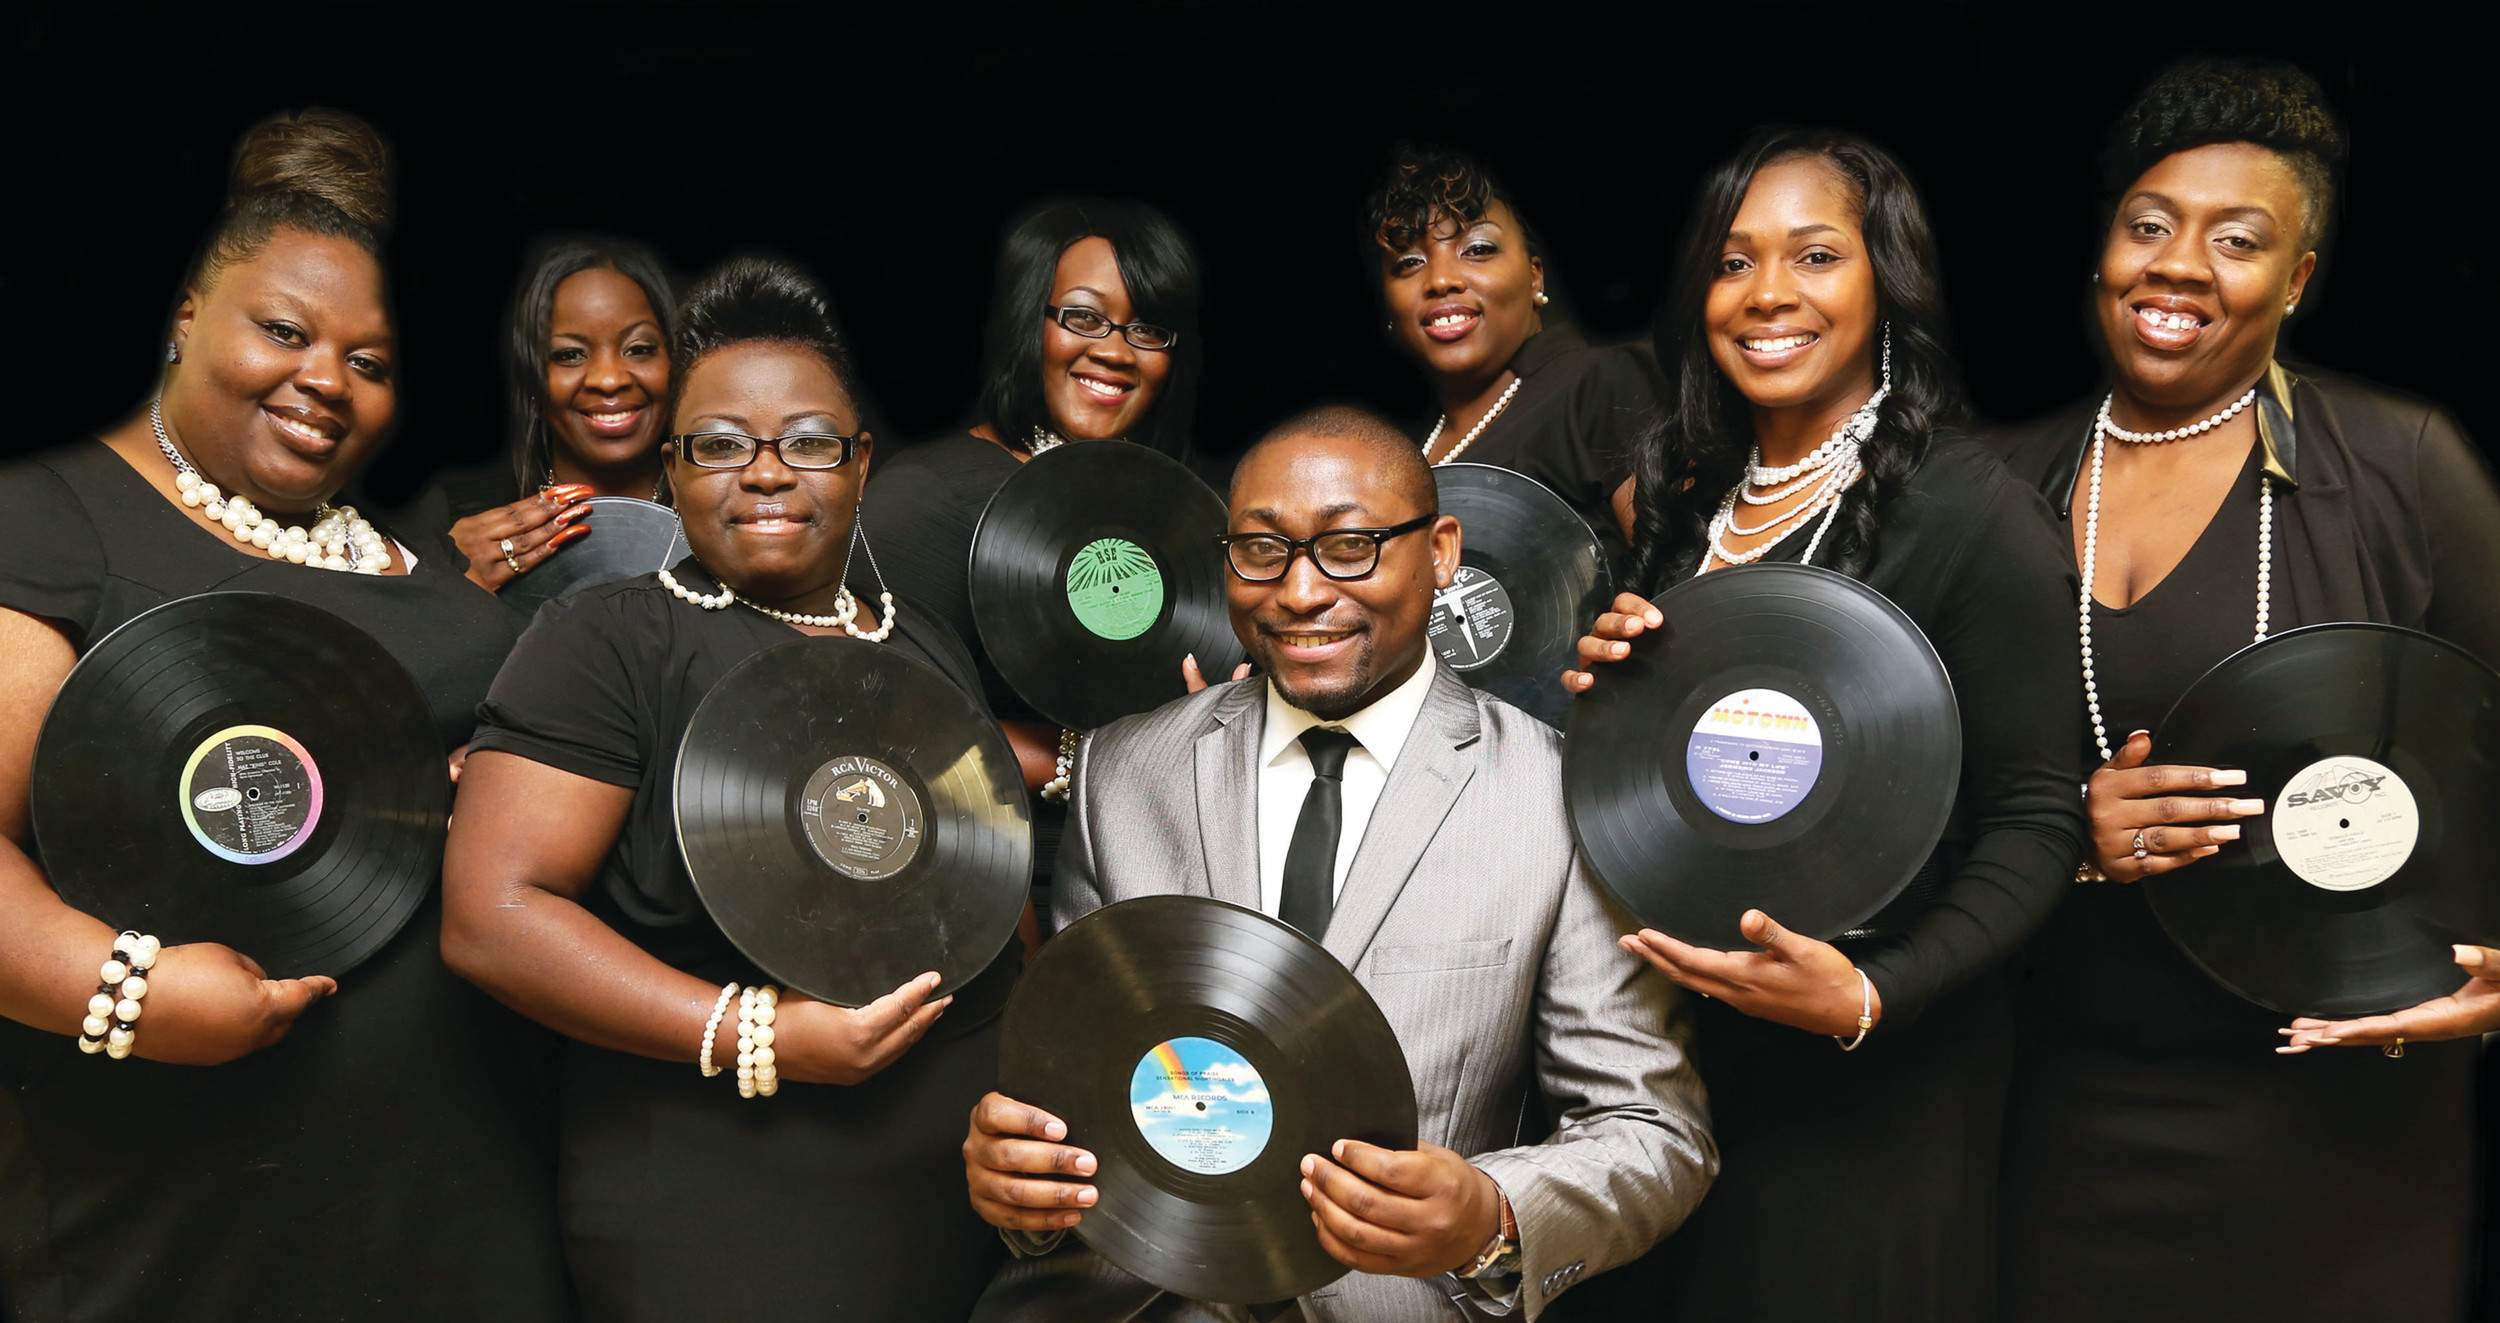 PHOTO PROVIDEDPurpose Driven is one of more than a dozen gospel groups performing Sunday at Union Hall.